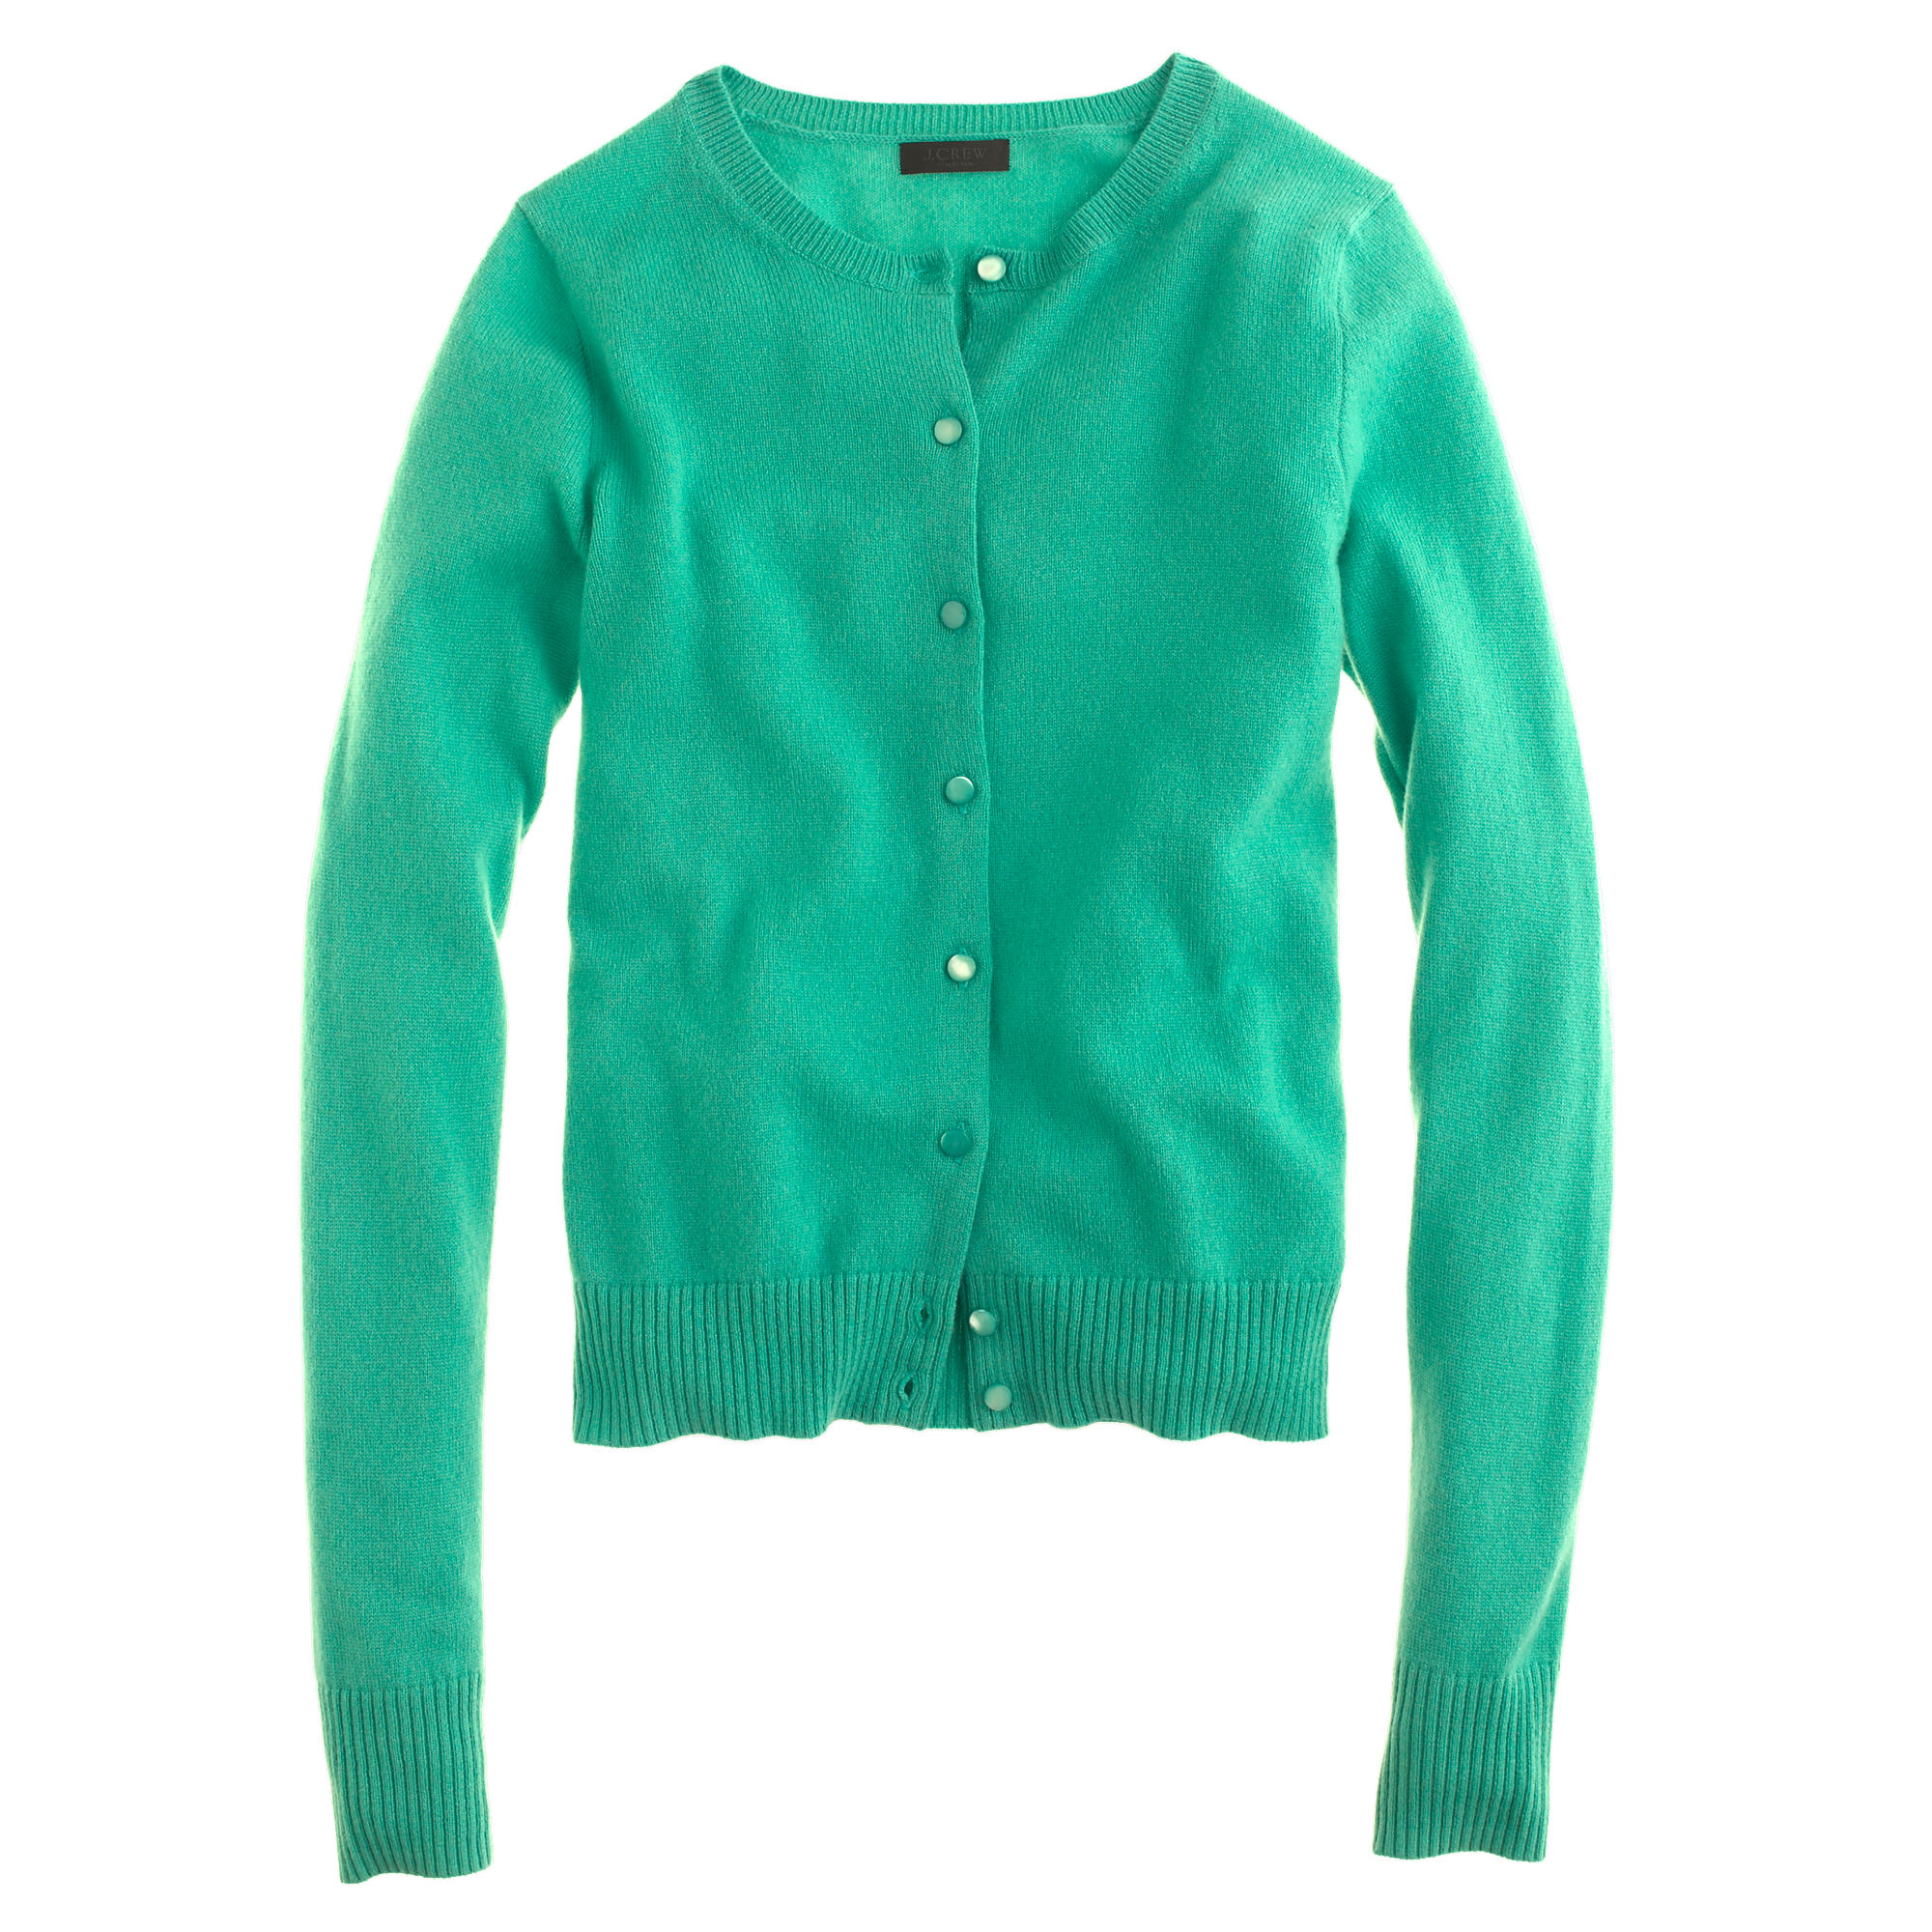 J.crew Collection Cashmere Cardigan Sweater in Green